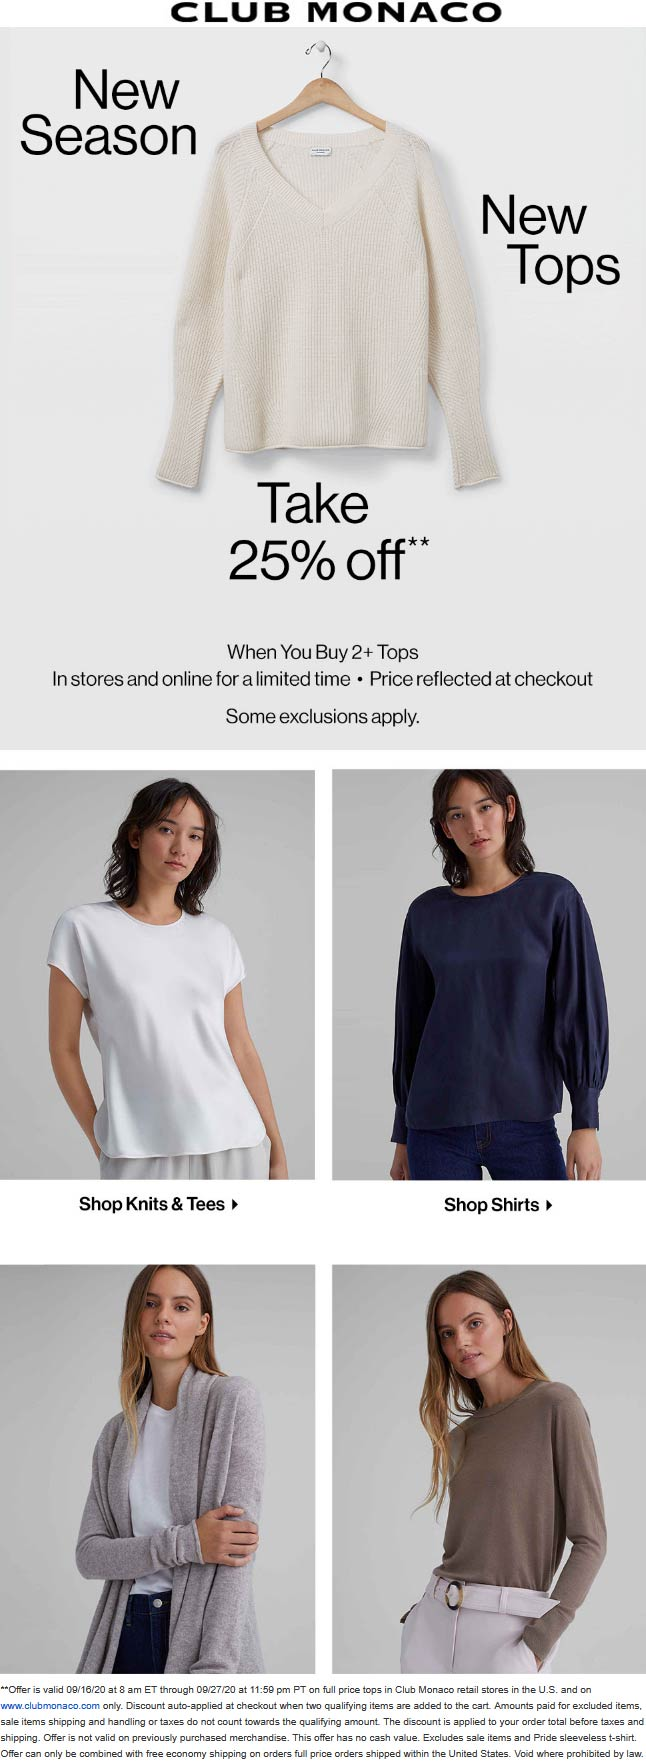 Club Monaco coupons & promo code for [September 2020]